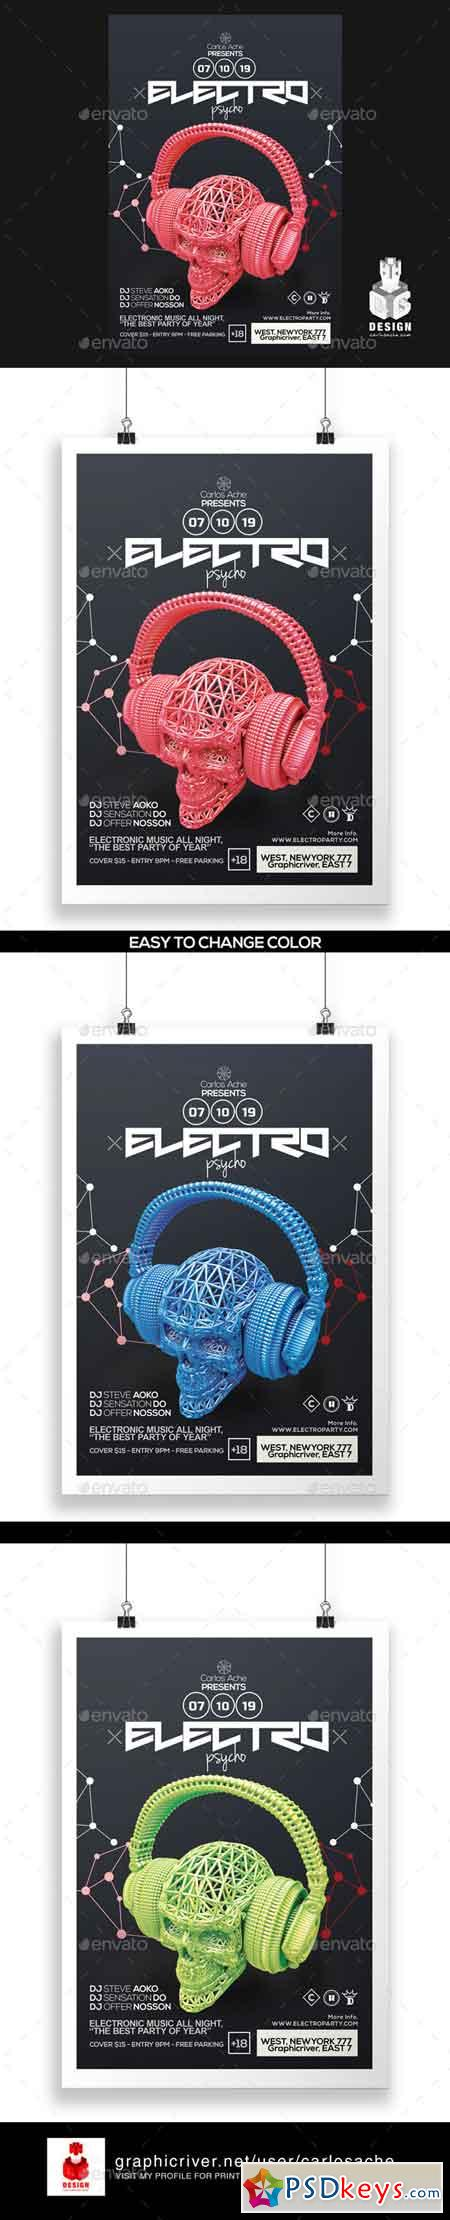 Electro Psycho Poster - Flyer Template 12145305